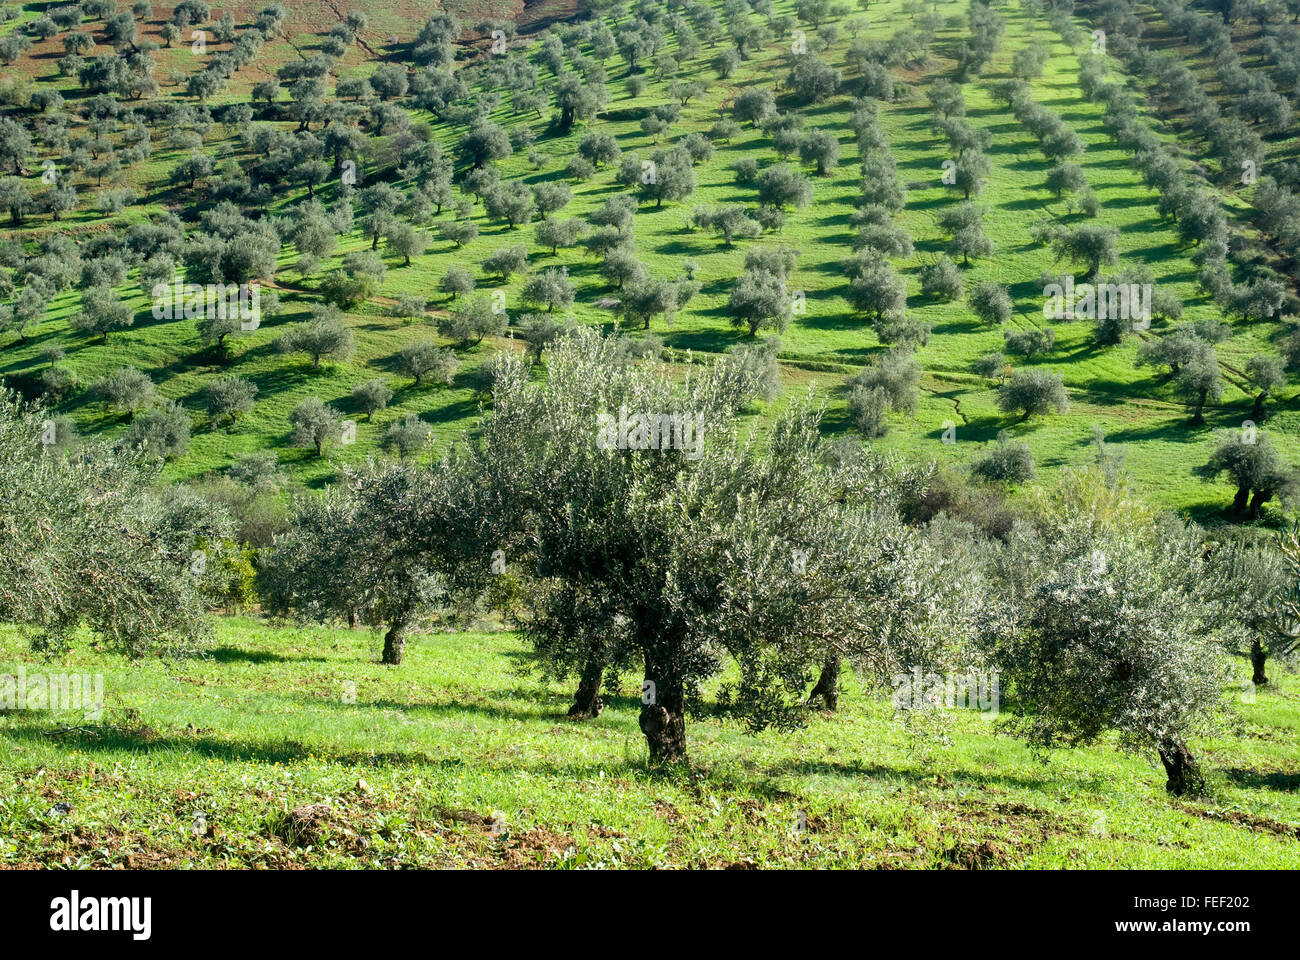 Olive orchards in the Andalusia region of Spain - Stock Image